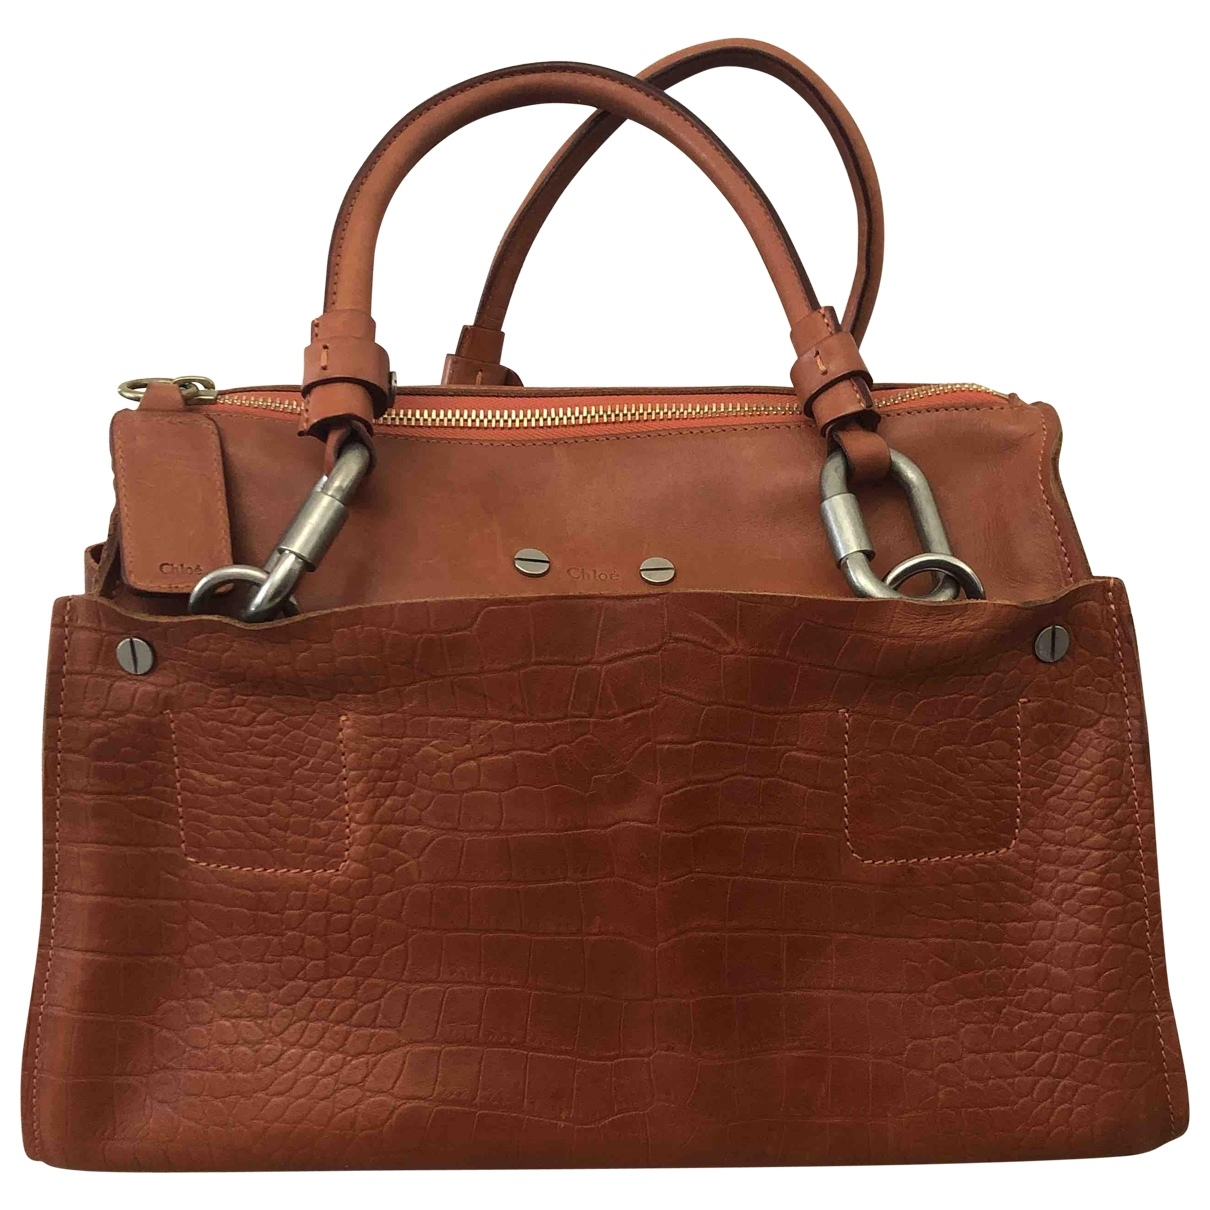 Chloé \N Camel Leather handbag for Women \N